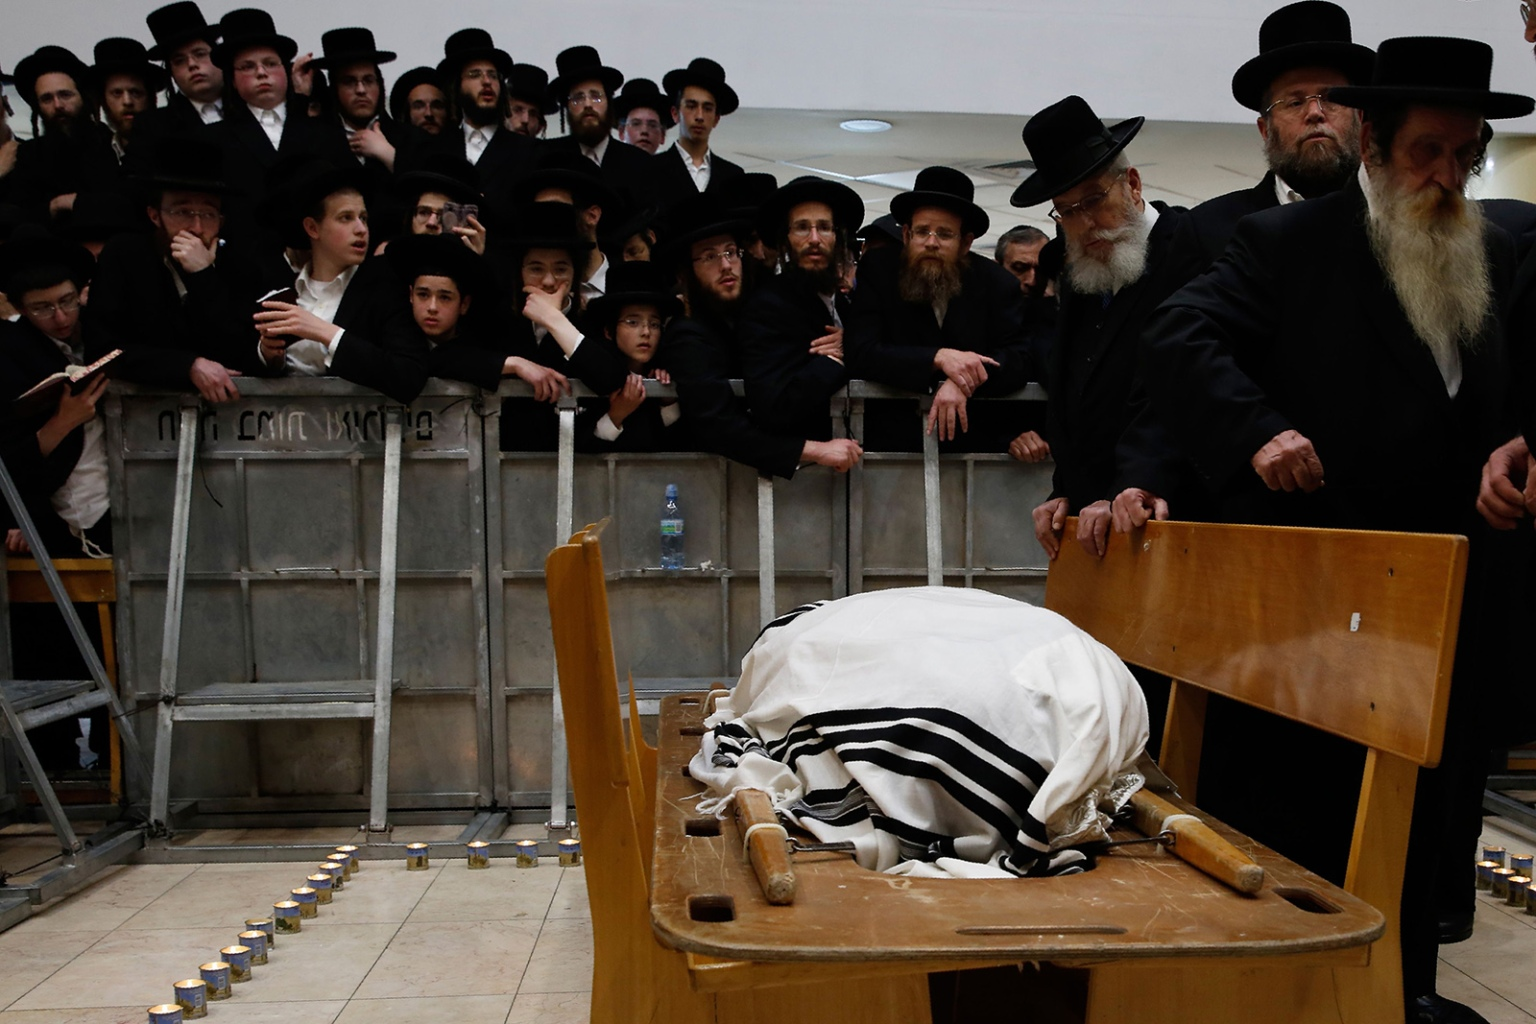 Ultra Orthodox Jewish men attend the funeral of Hassidic Rabbi Menahem Mendel Taub, who died at the age of 96, in Jerusalem on April 28. Thousands attended the funeral for the Holocaust survivor known for his especially brutal treatment at the hands of the Nazis and his efforts to memoialize the genocide's victims. GIL COHEN-MAGEN/AFP/Getty Images